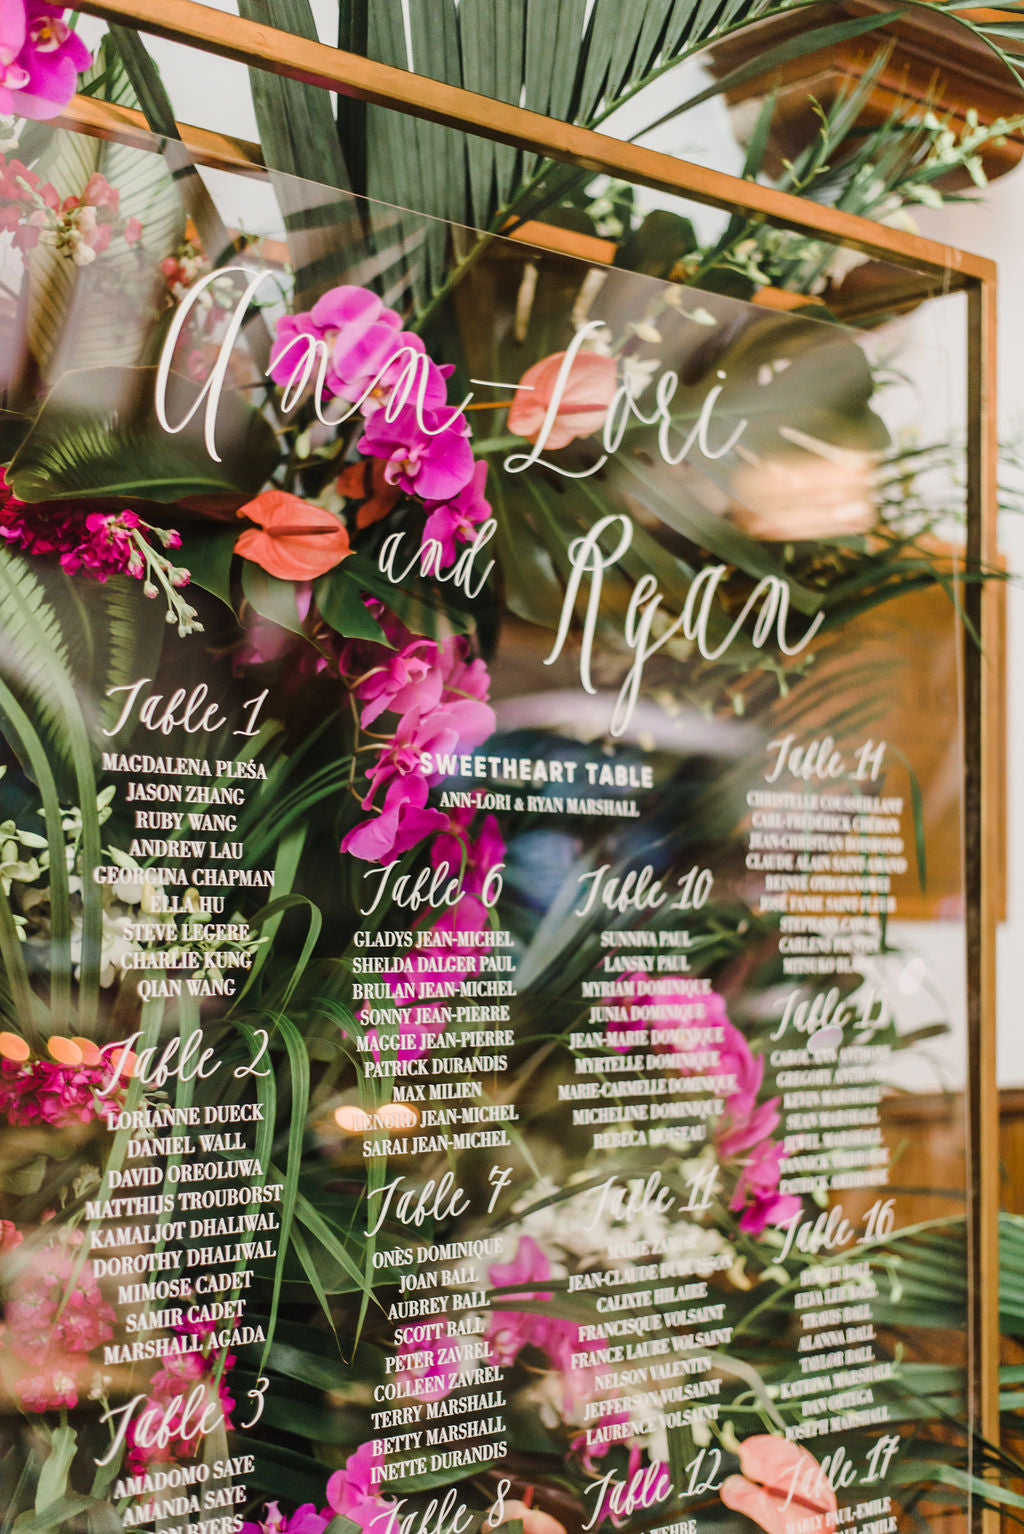 Bougainvillea Tropical Wedding Destination Inspiration Acrylic Seating Chart Citrus Press Co